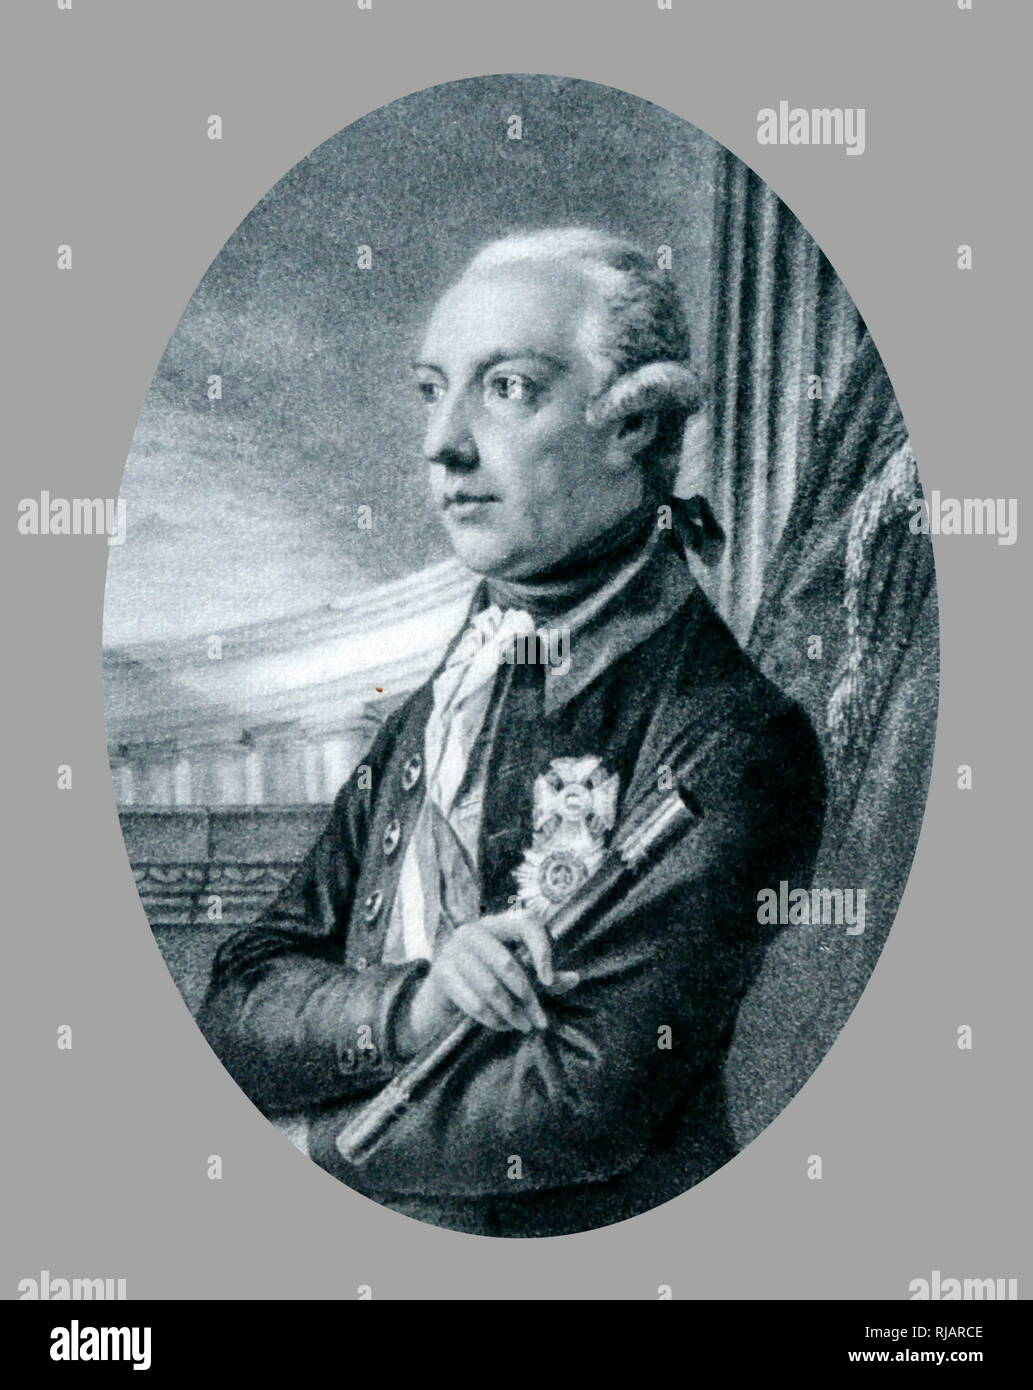 Portrait by Fuger of Joseph II ( 1741 – 1790),  Austrian Emperor, Holy Roman Emperor from 1765 to 1790 and ruler of the Habsburg lands from 1780 to 1790 Stock Photo